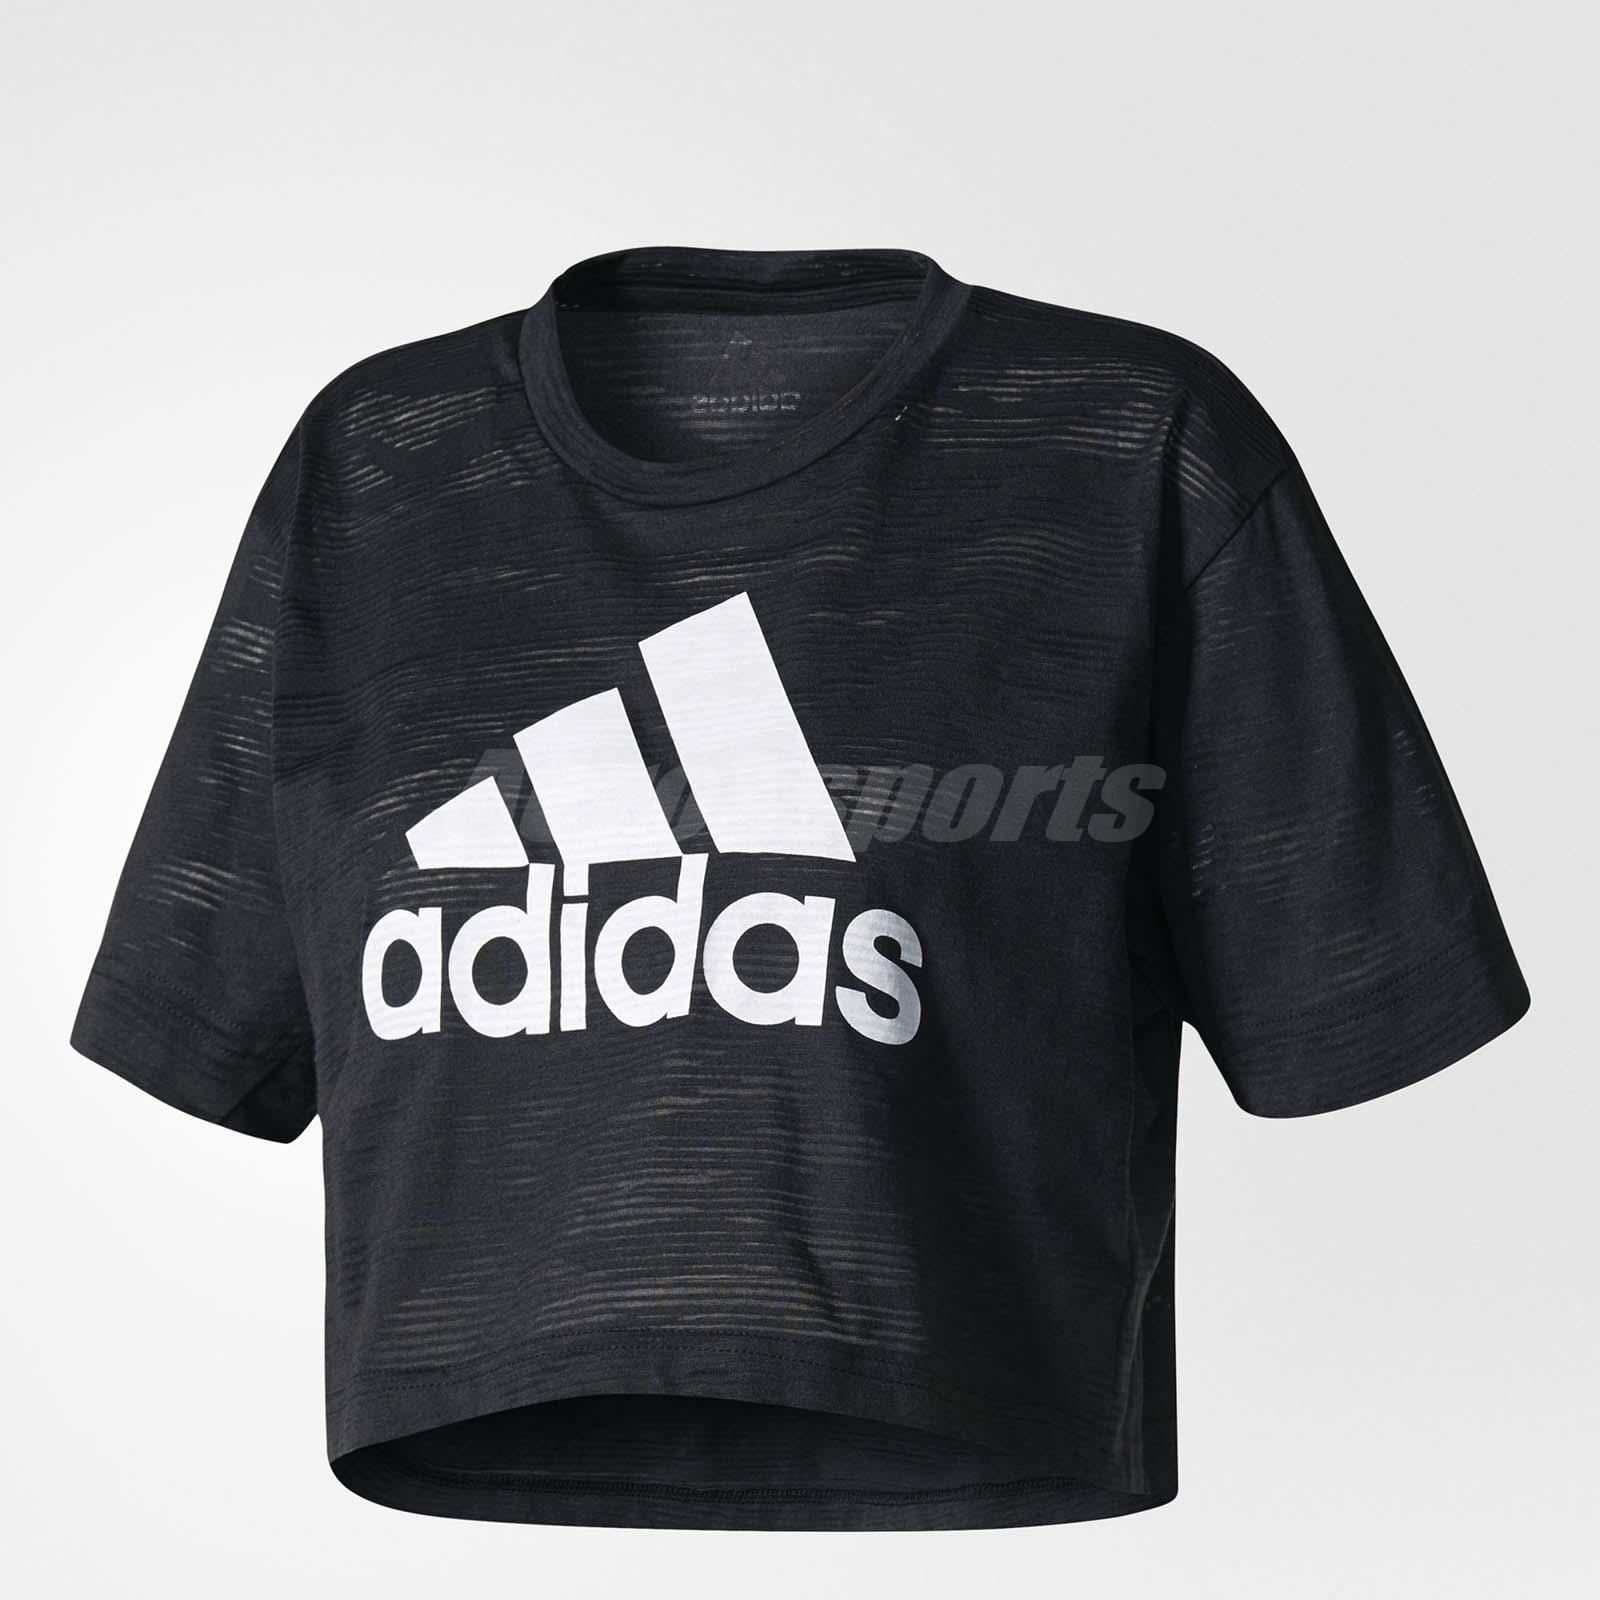 adidas women aeroknit crop top sports running training tee t shirt black bq5791 ebay. Black Bedroom Furniture Sets. Home Design Ideas